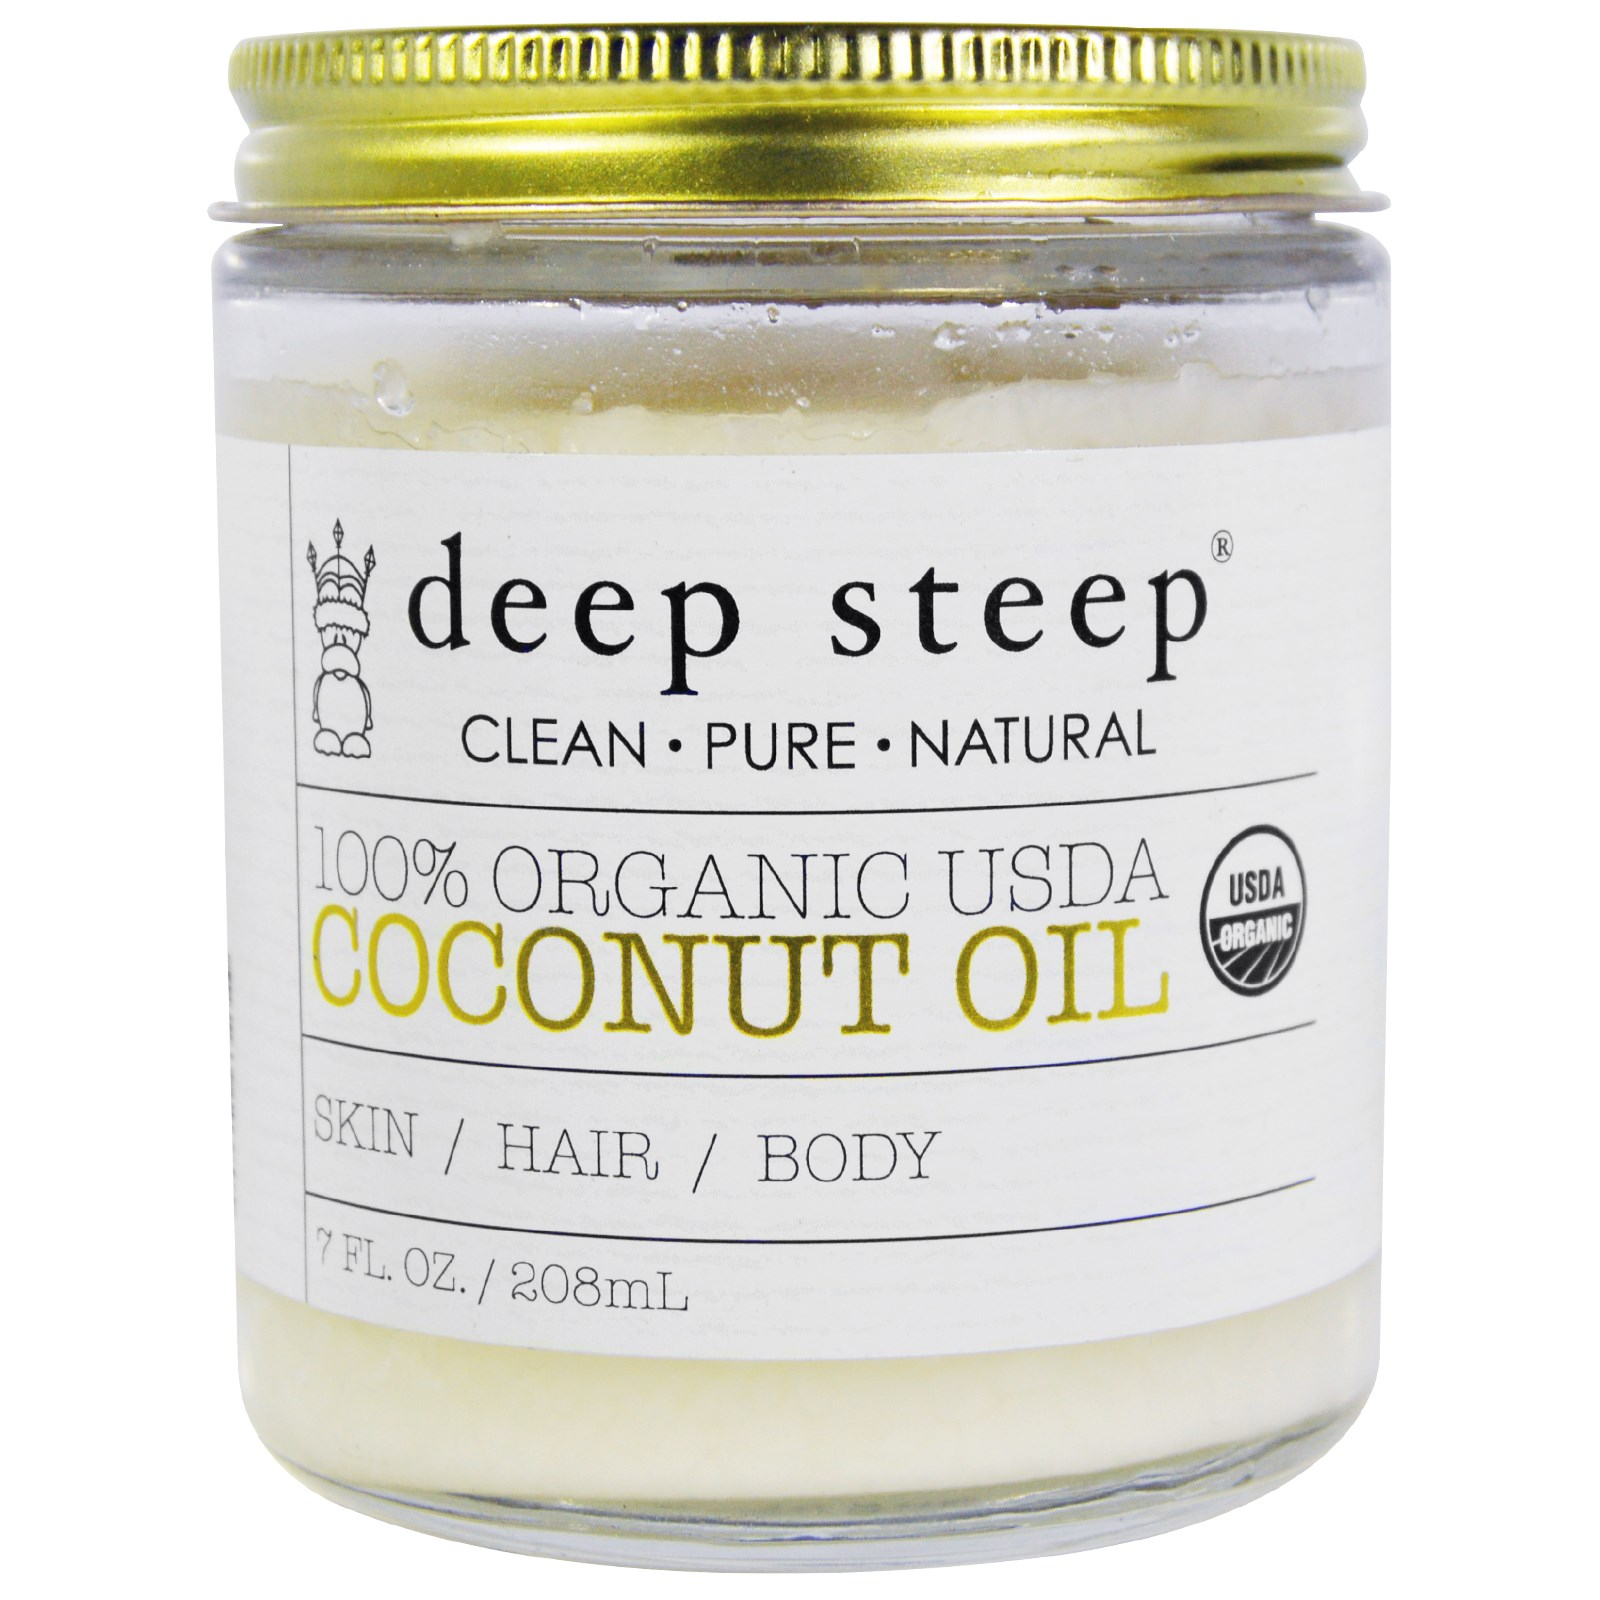 Deep Steep, USDA Organic Coconut Oil, 7 oz